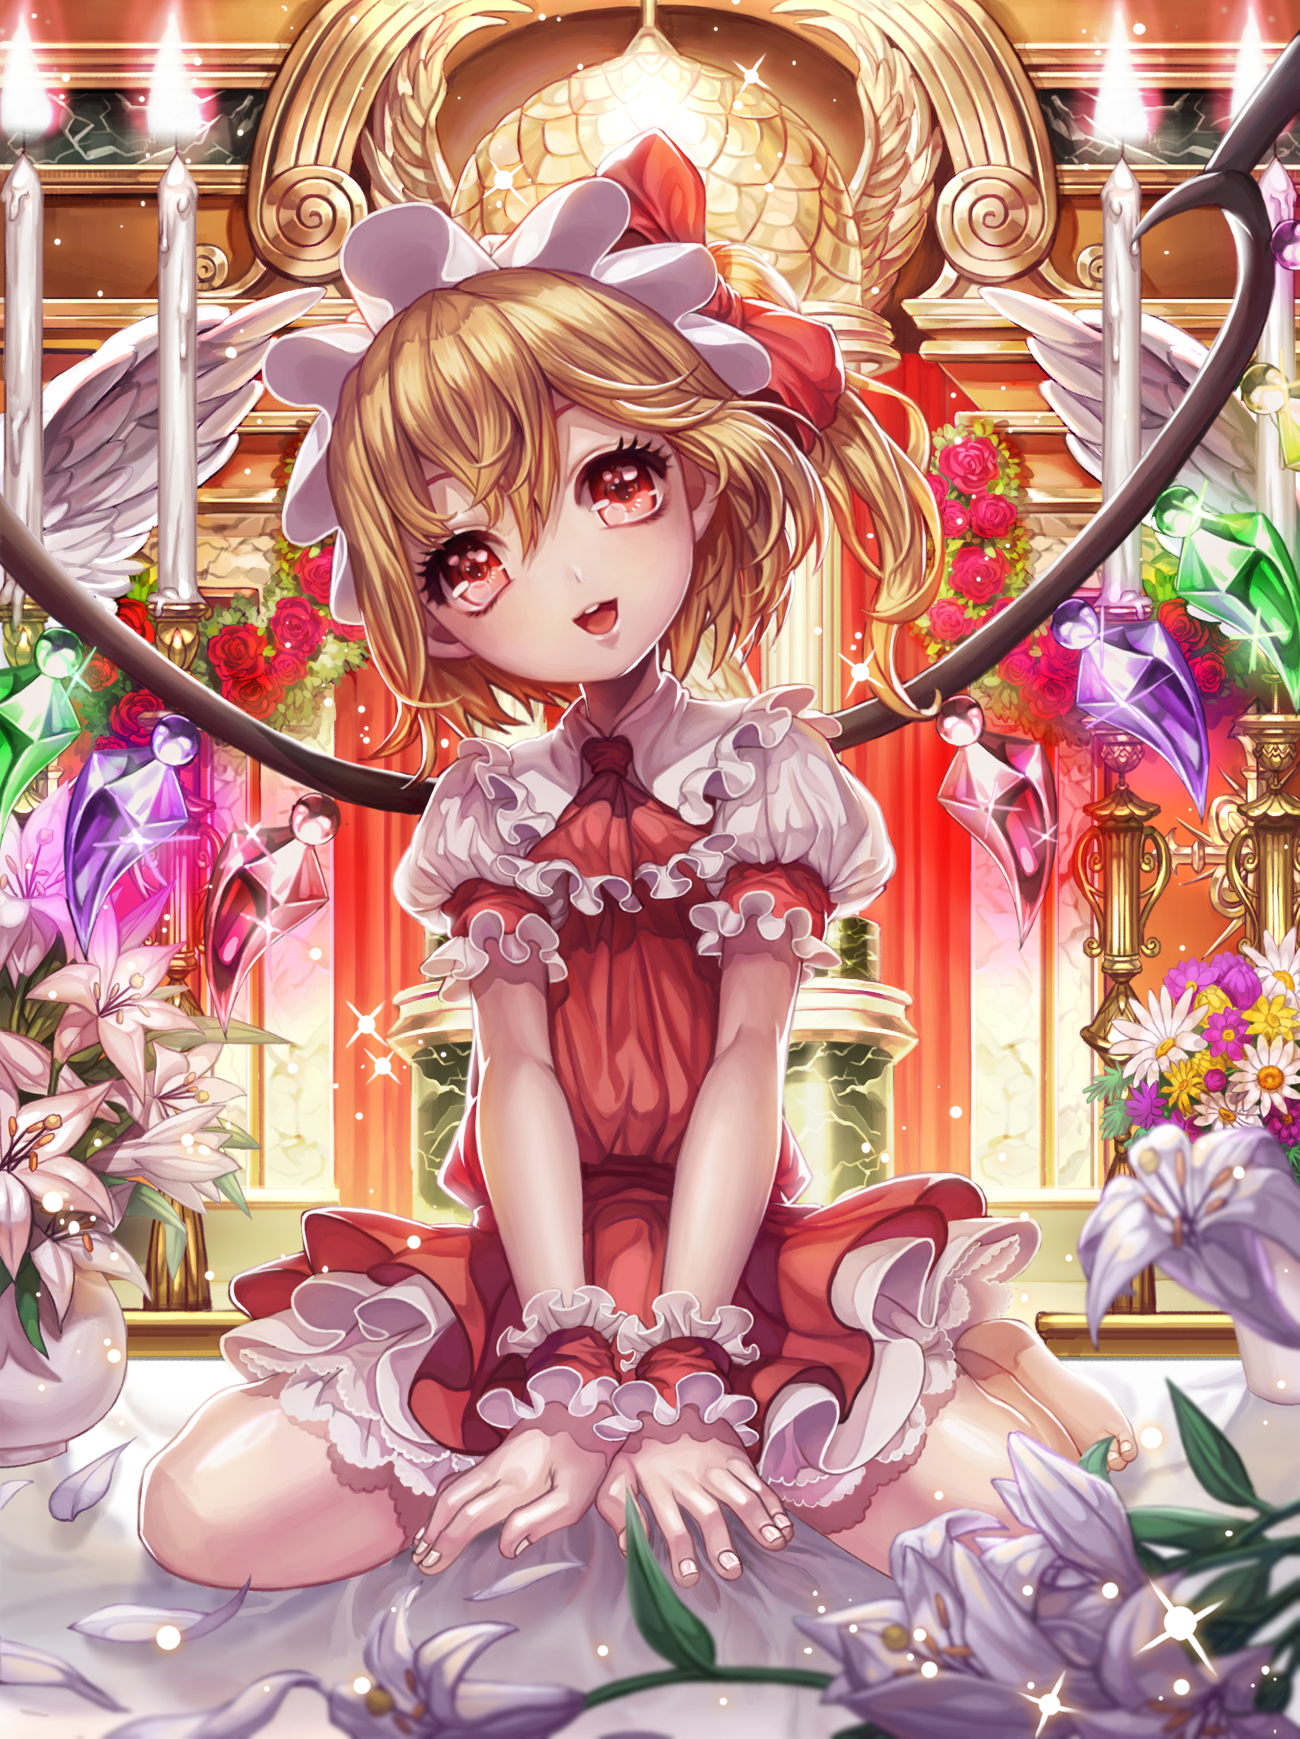 flandre scarlet 東方project ドール